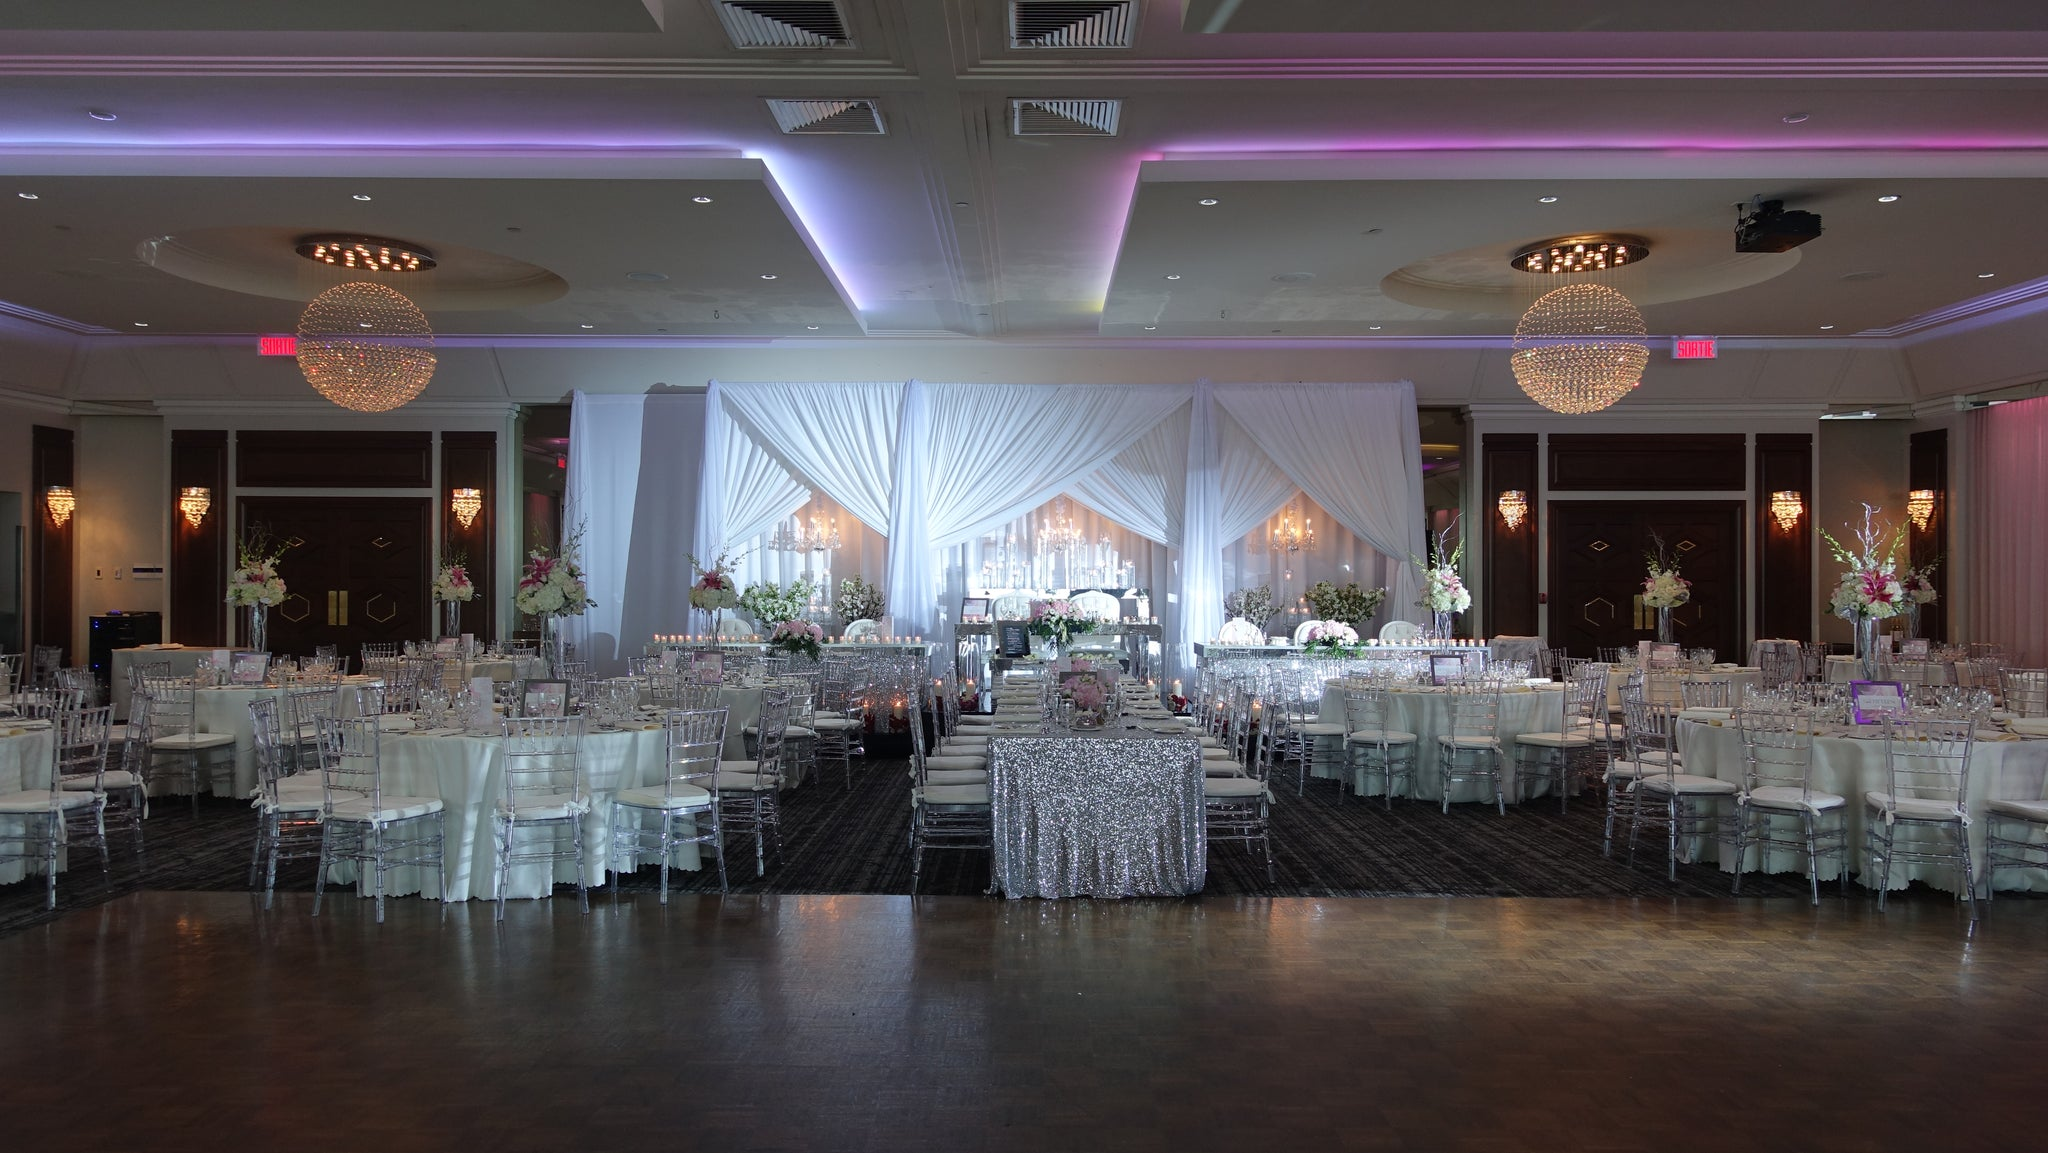 Le Diamant Reception Hall